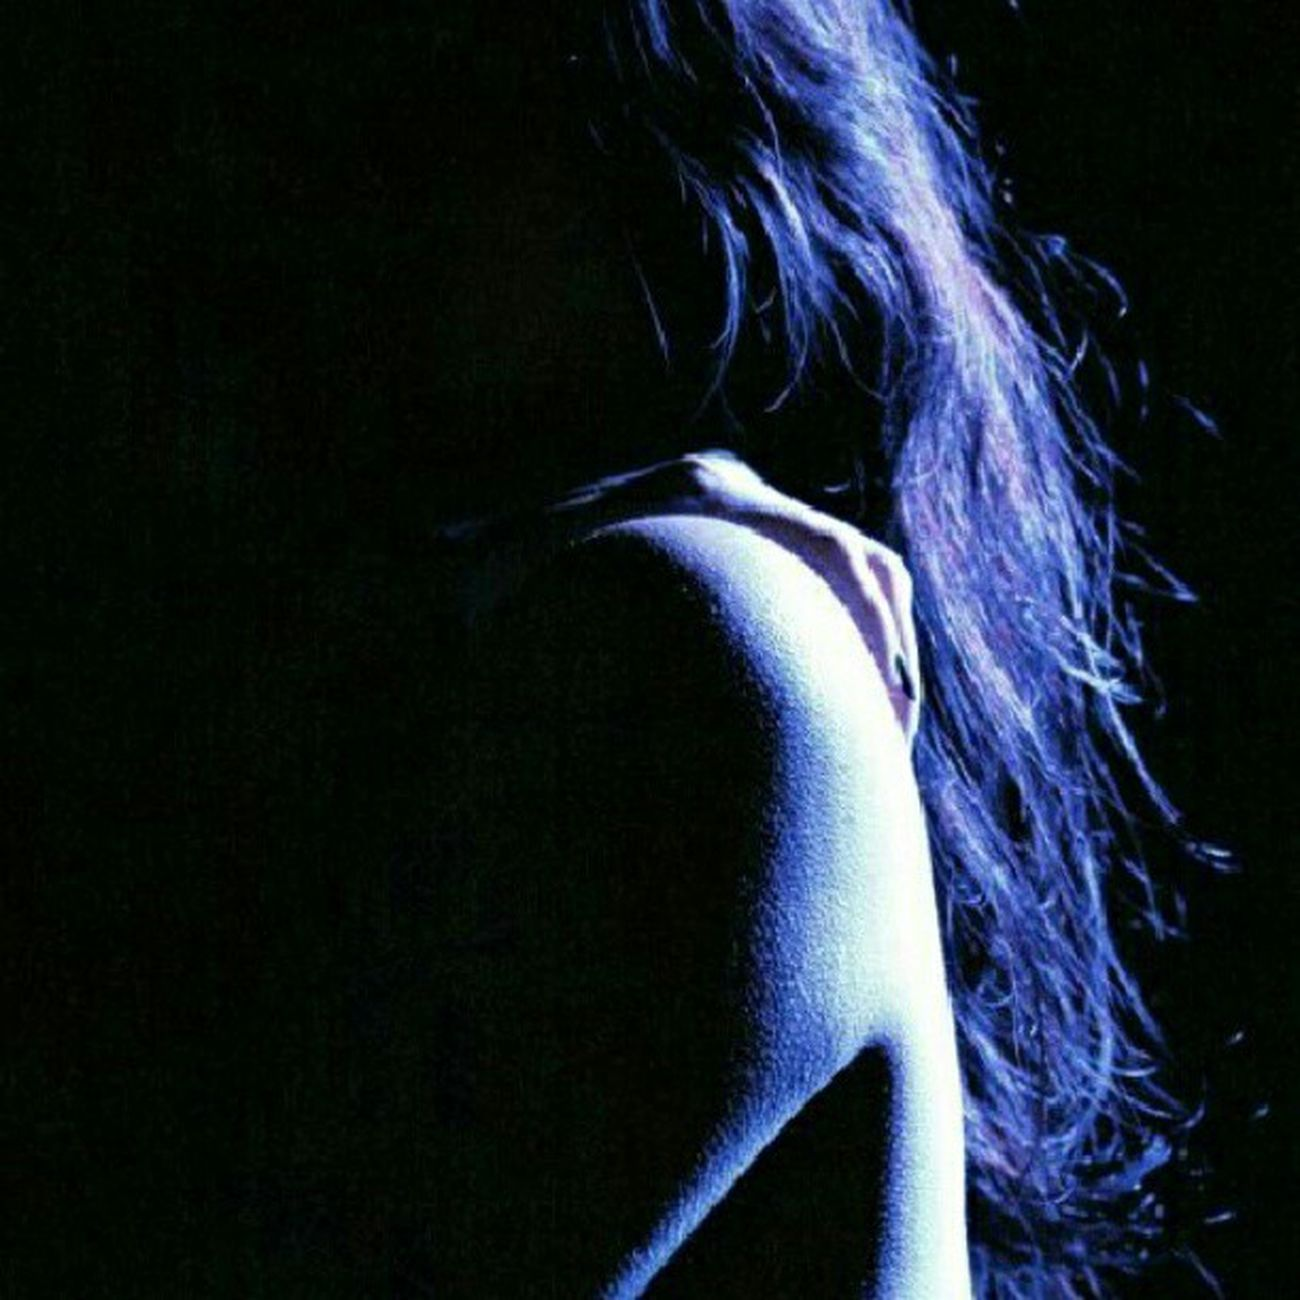 By Phil Wever Splitlighting Photographyoftheday Photography Bluelighting silhouette